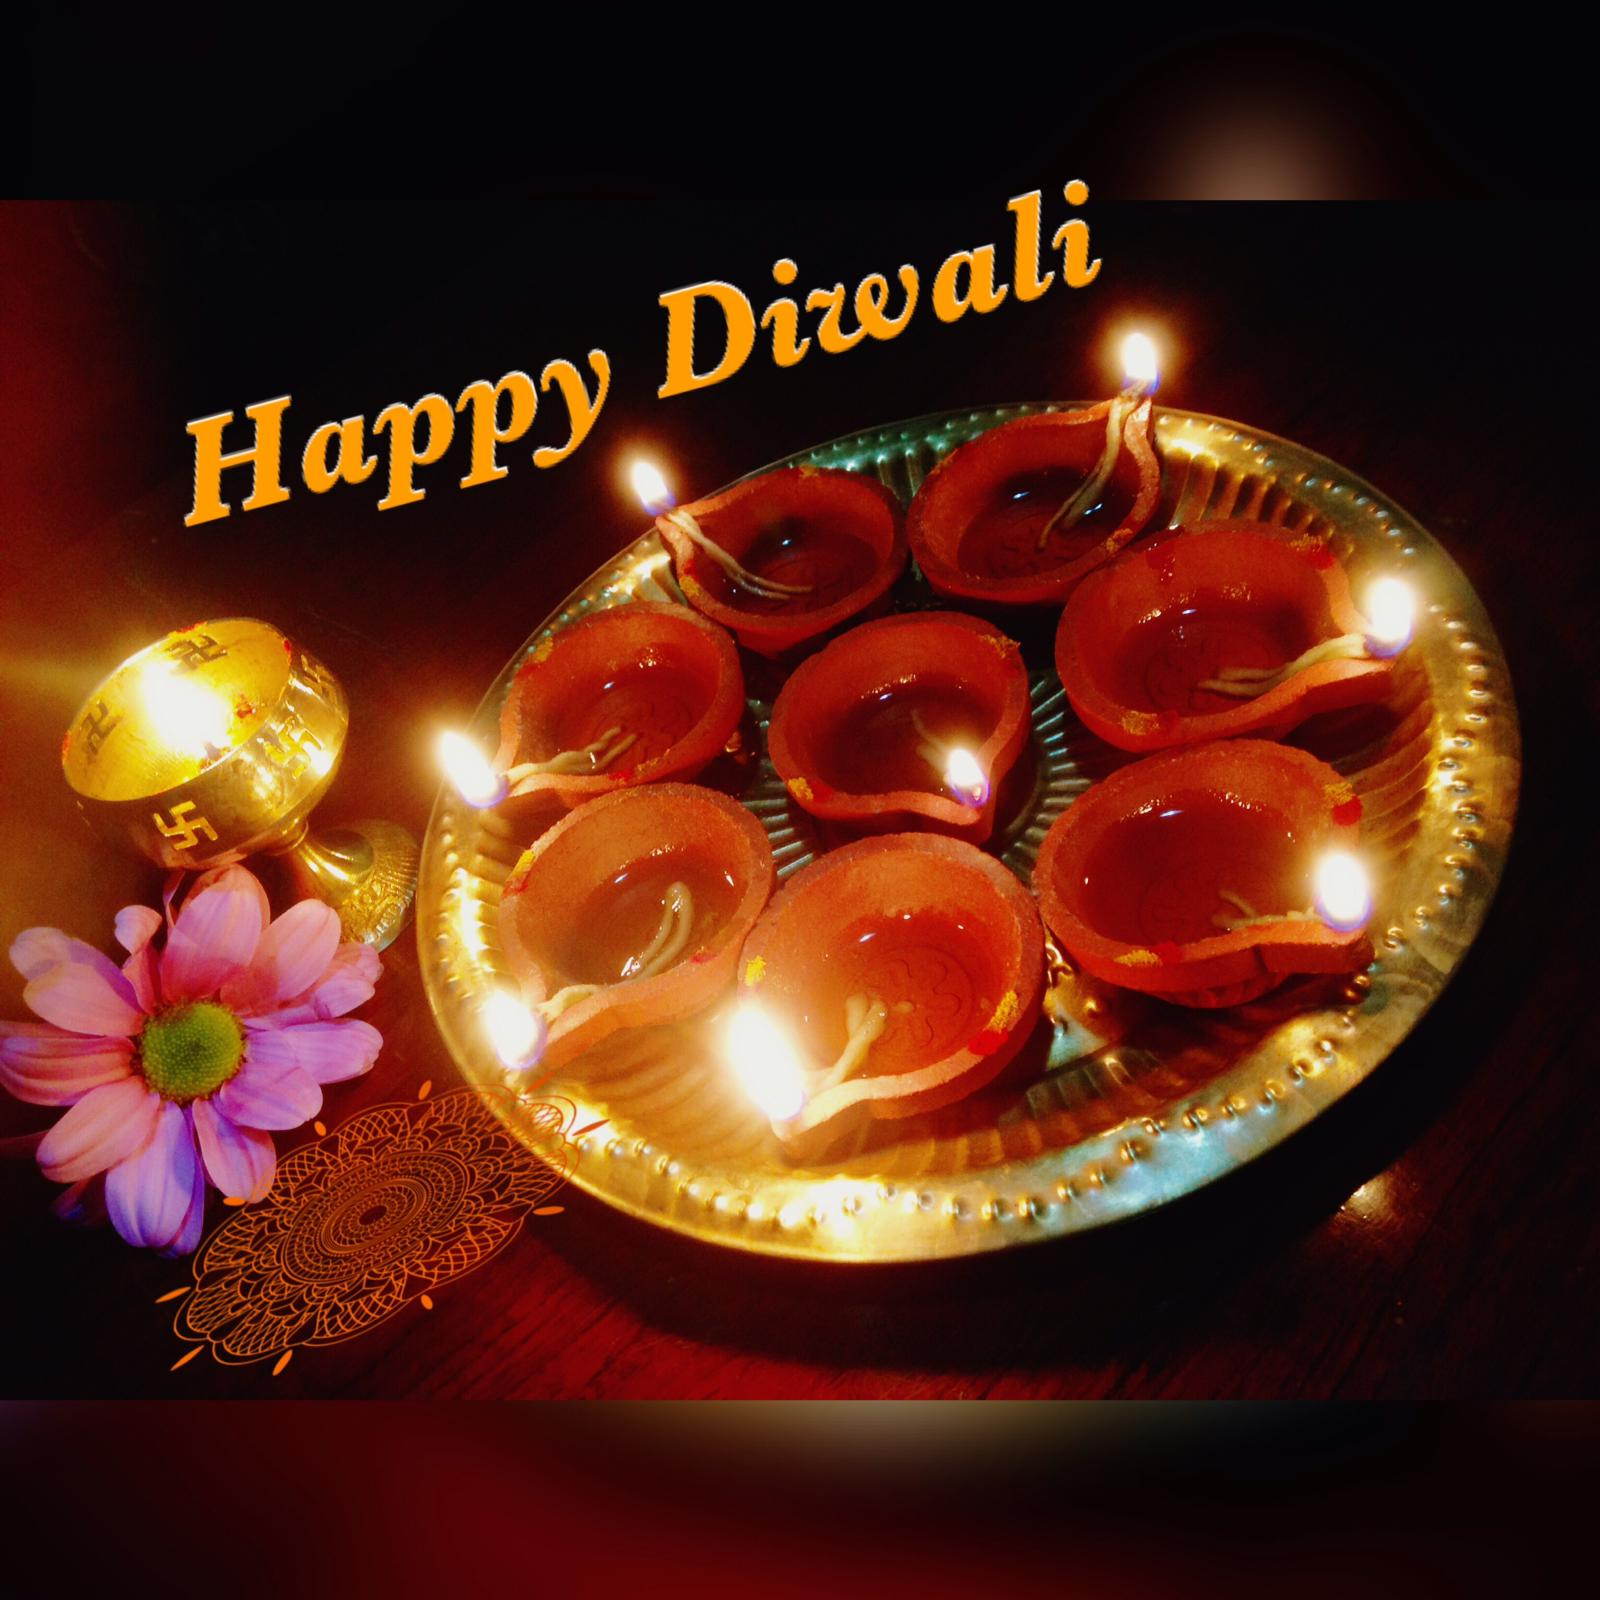 #Diwali - Diwali Messages, Quotes and Status Messages For WhatsApp